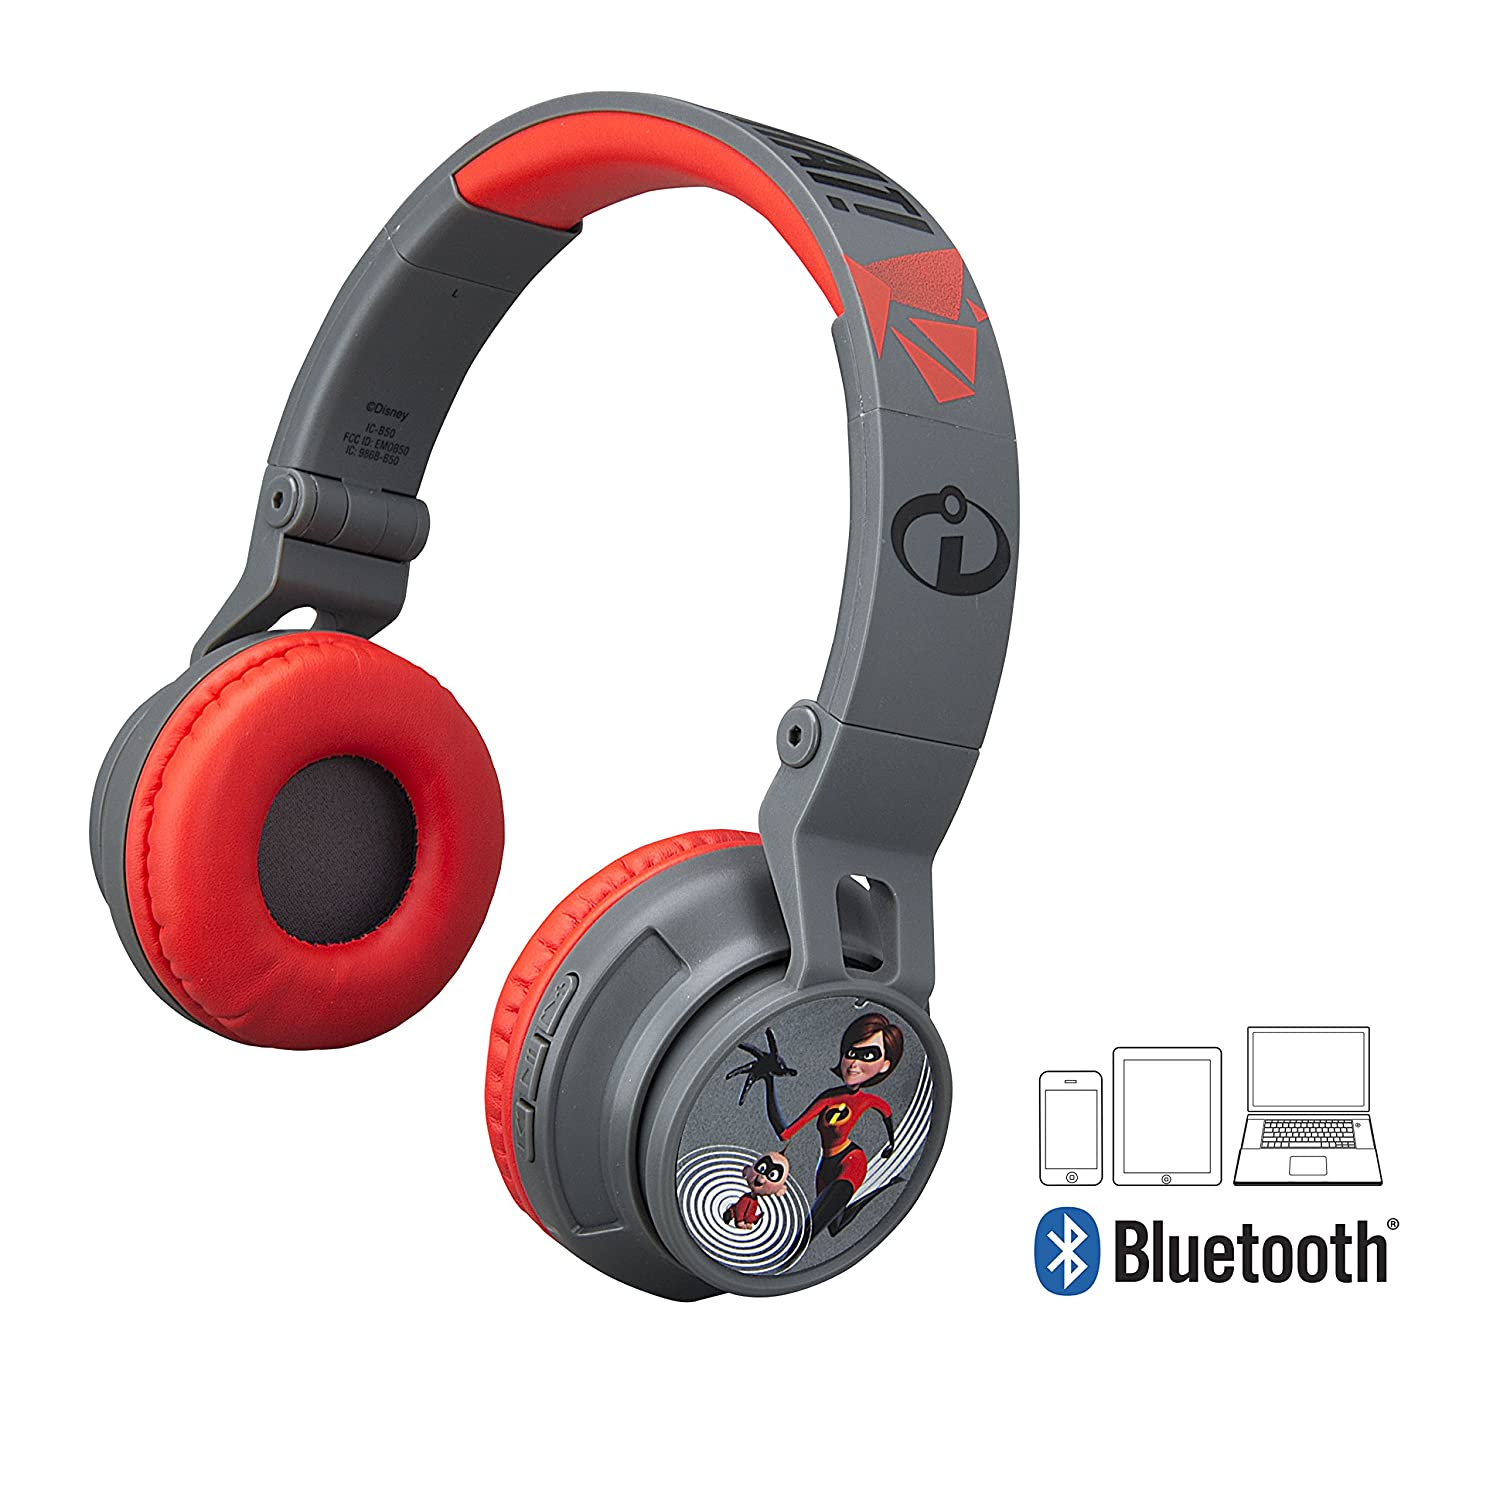 Incredibles 2 Bluetooth Headphones for Kids Wireless Rechargeable Kid Friendly Sound (Incredibles 2)